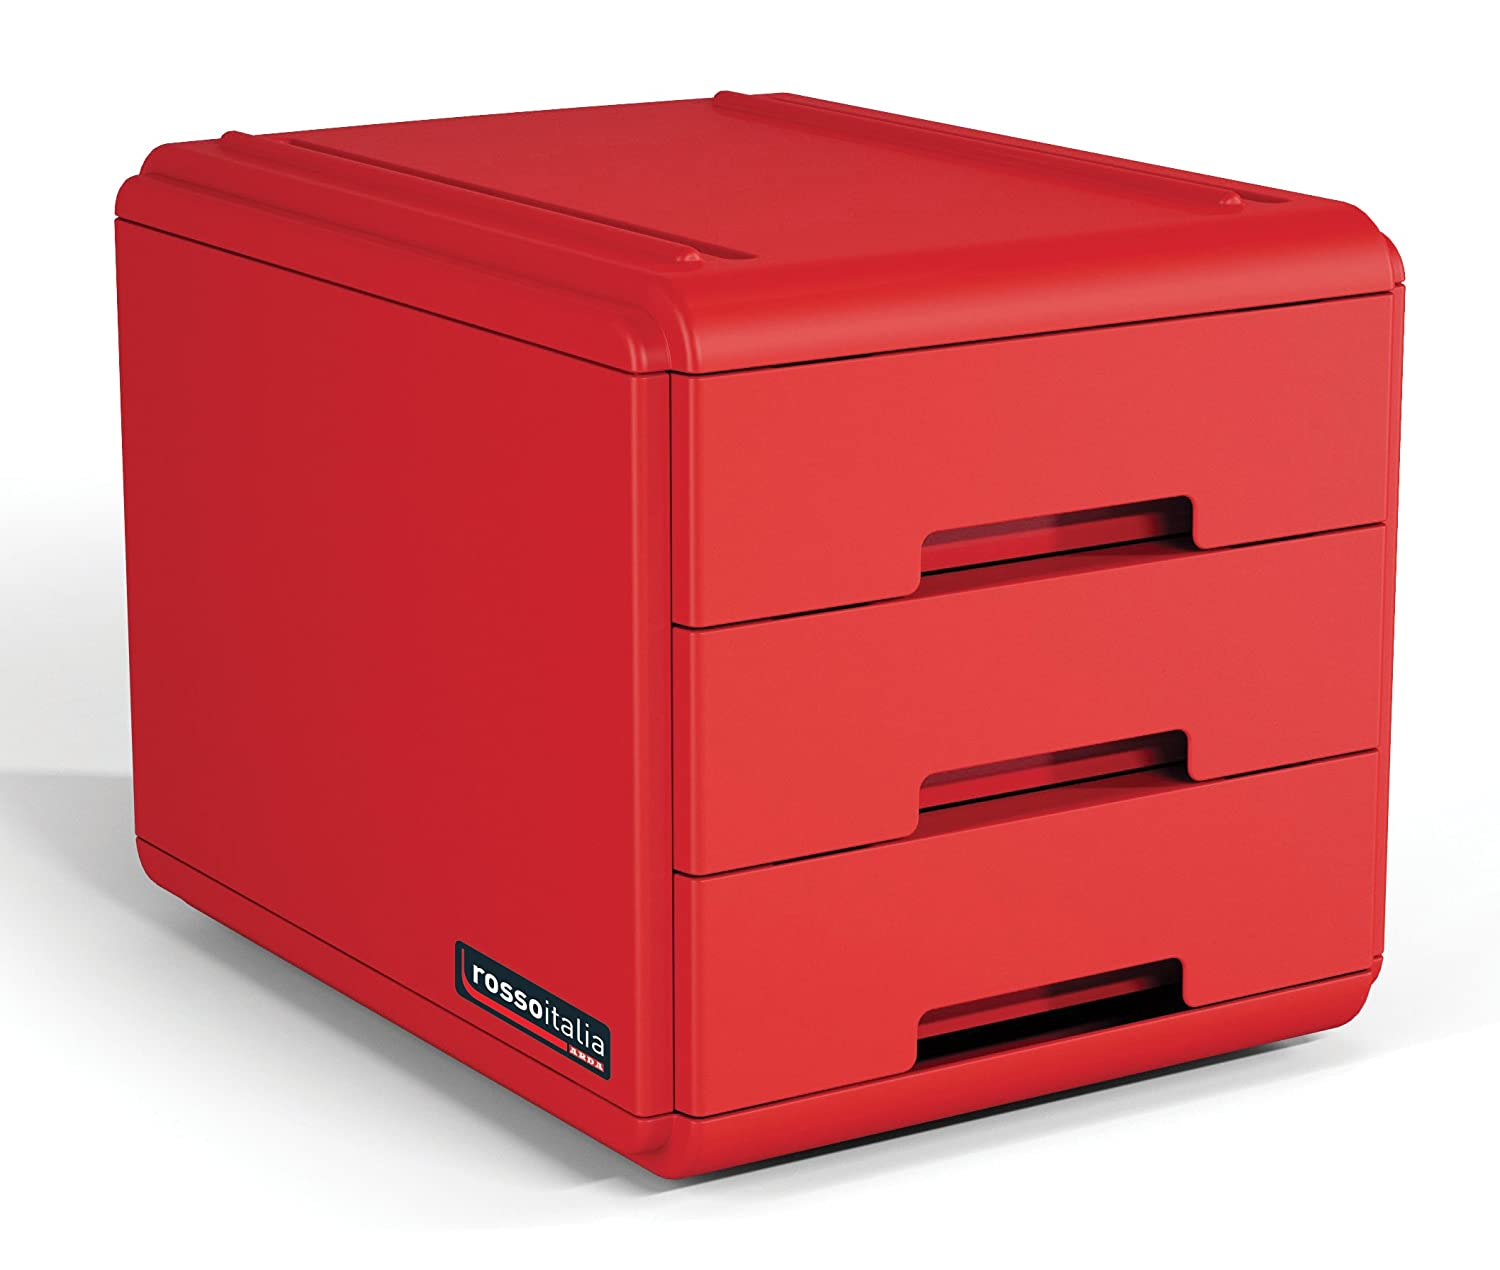 Arda 19p3prir Mini Chest of Drawers, Red Arda Spa